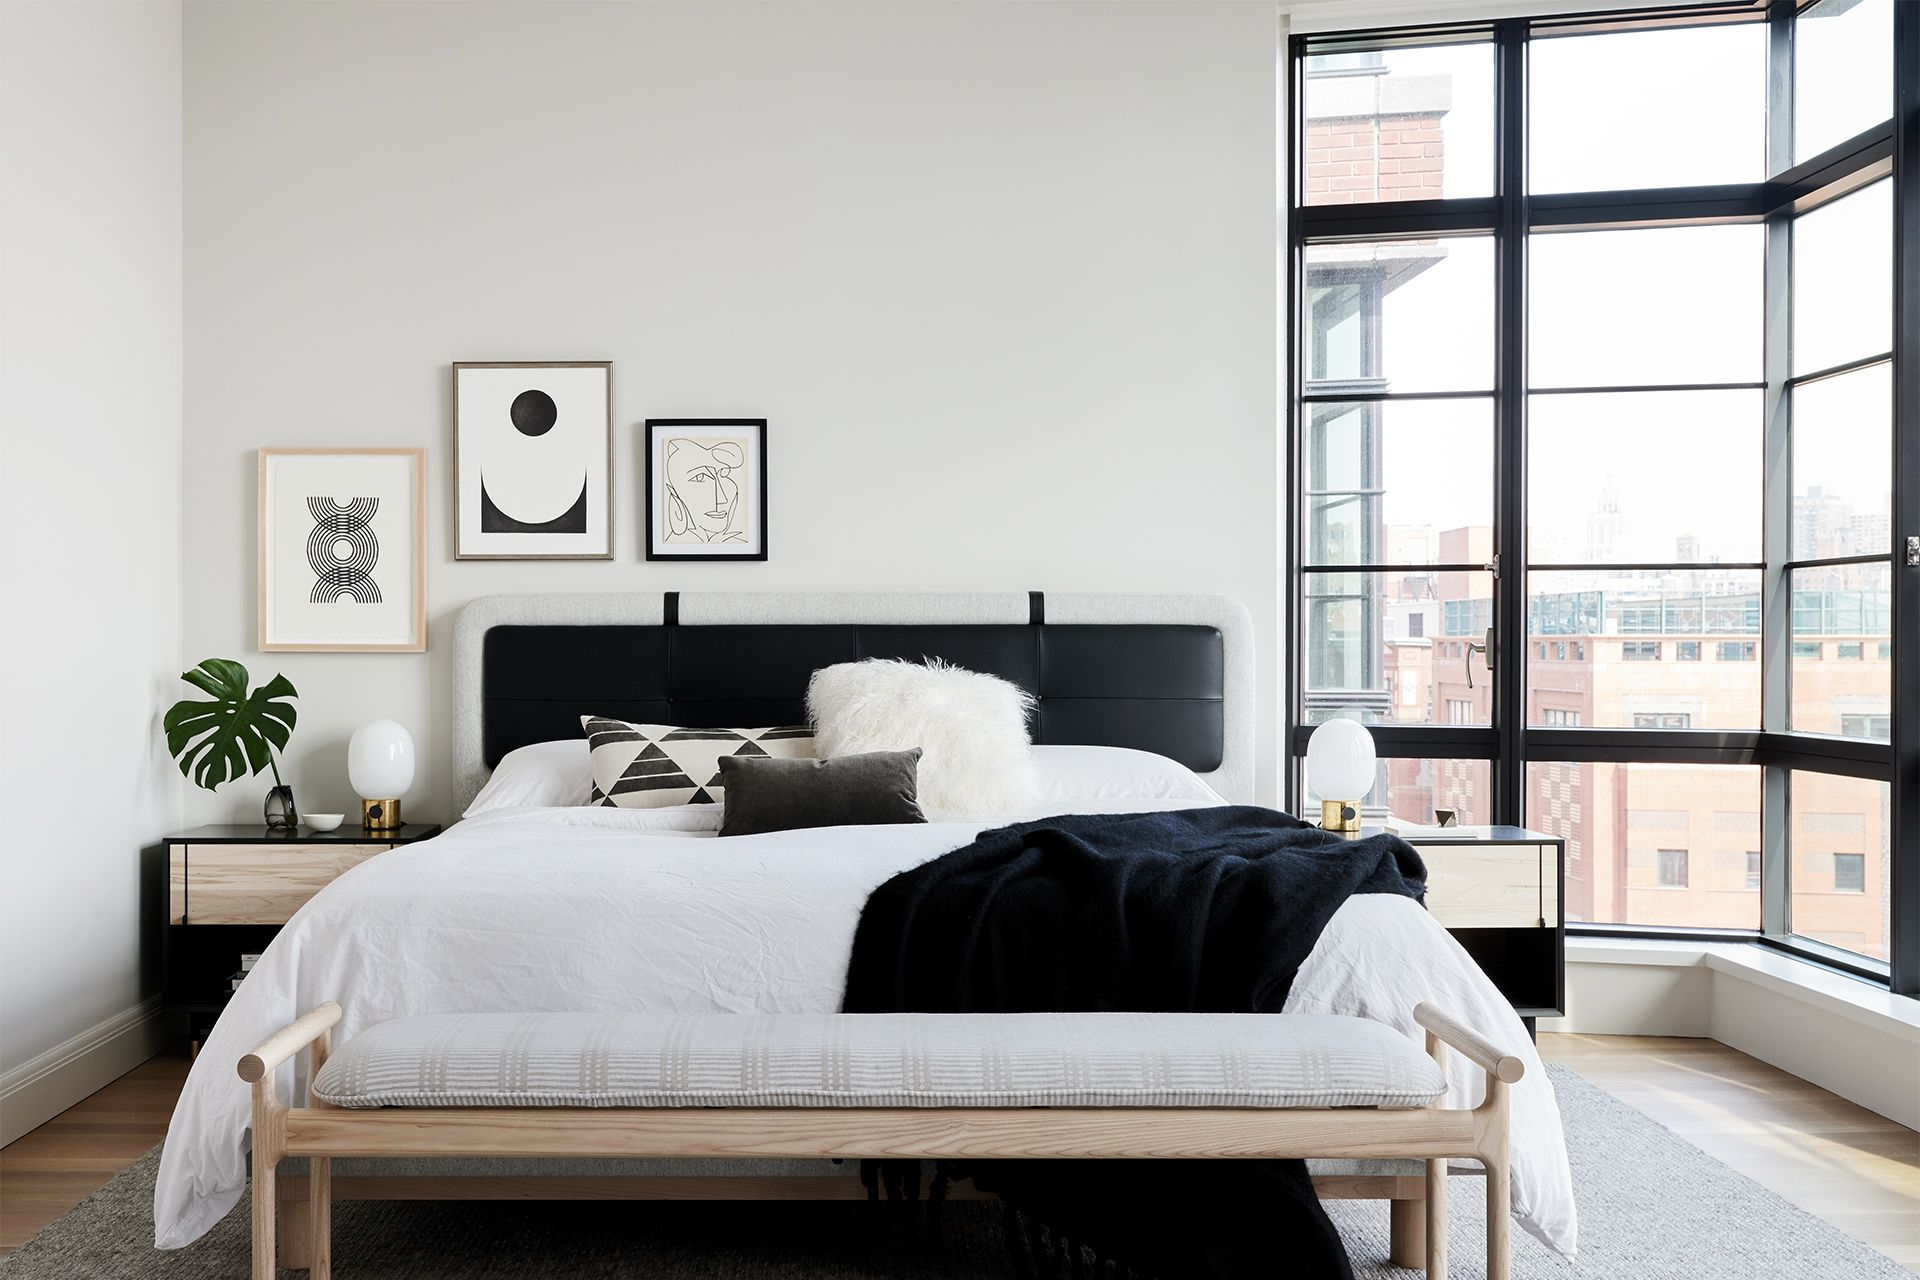 Minimalist Bedroom Ideas To Help You Get Comfortable Diy Apartments Small Tips Minimalism Bedroom Interior Modern Bedroom Colors Minimalist Bedroom